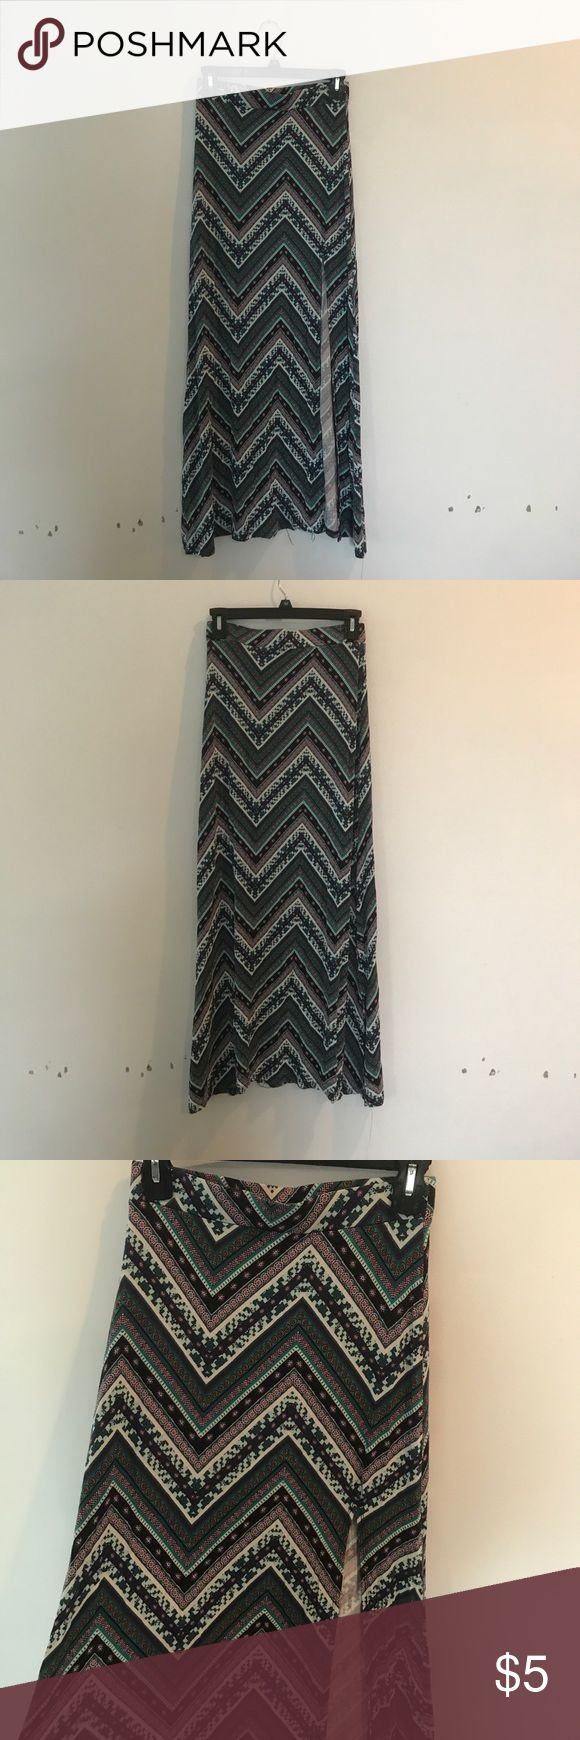 Charlotte Russe Maxi skirt Blue/purple/white Maxi skirt with slit. Great condition. Charlotte Russe Skirts Maxi